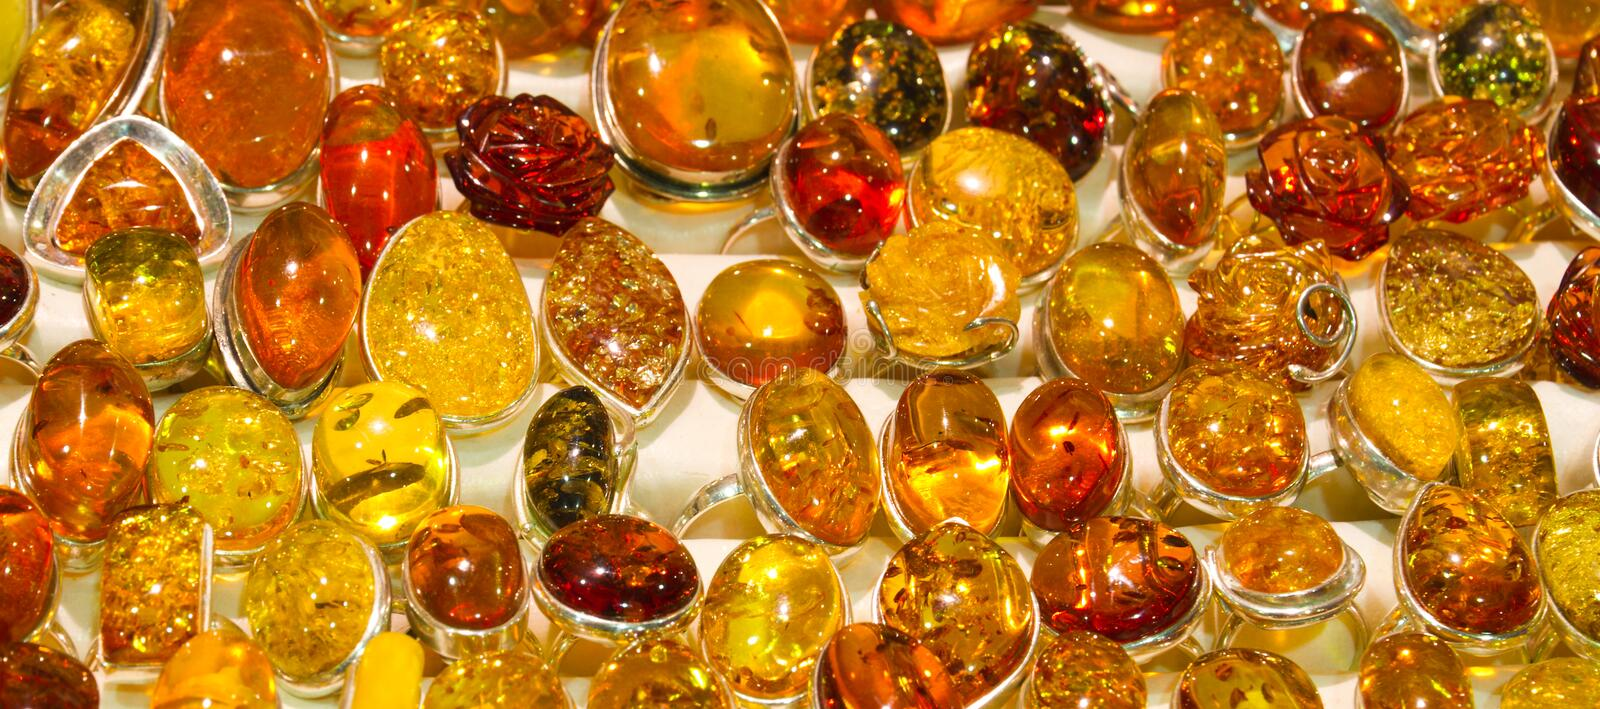 Download Handmade amber rings stock image. Image of bijouterie - 36217361